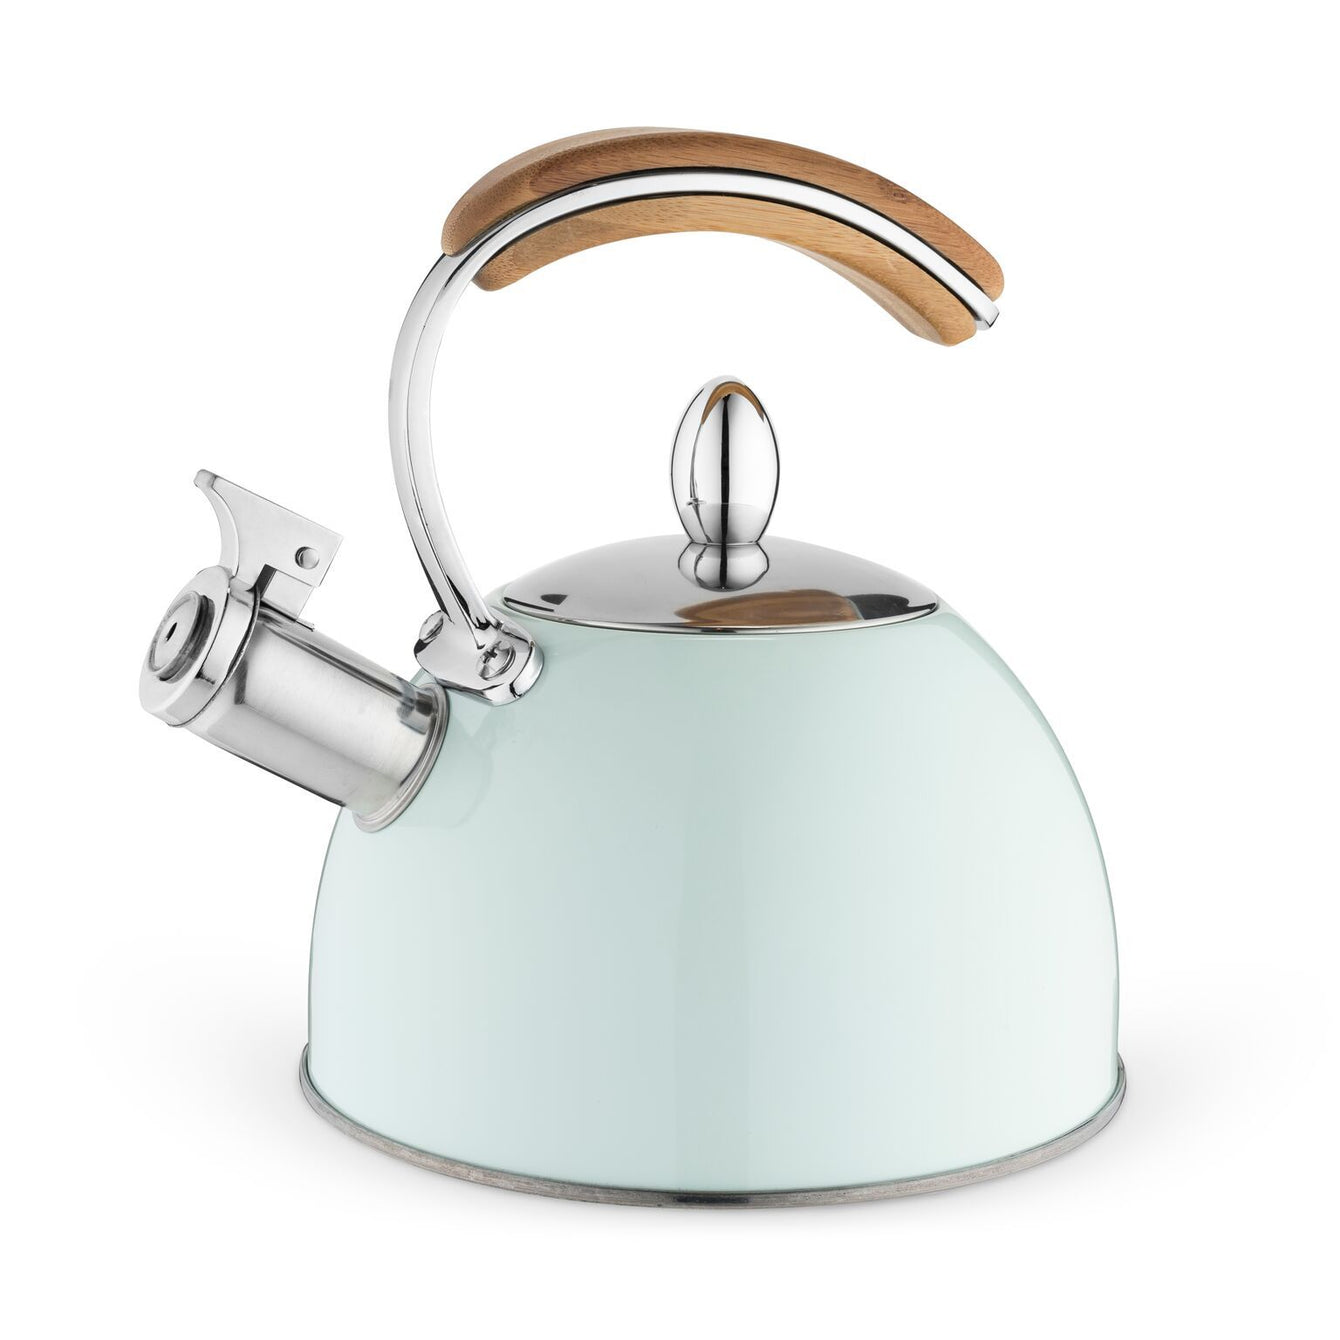 Presley Stainless Steel and Wood Tea Kettle-Home - Coffee + Tea - Tea Pots + Kettles-PINKY UP-Mint-Peccadilly